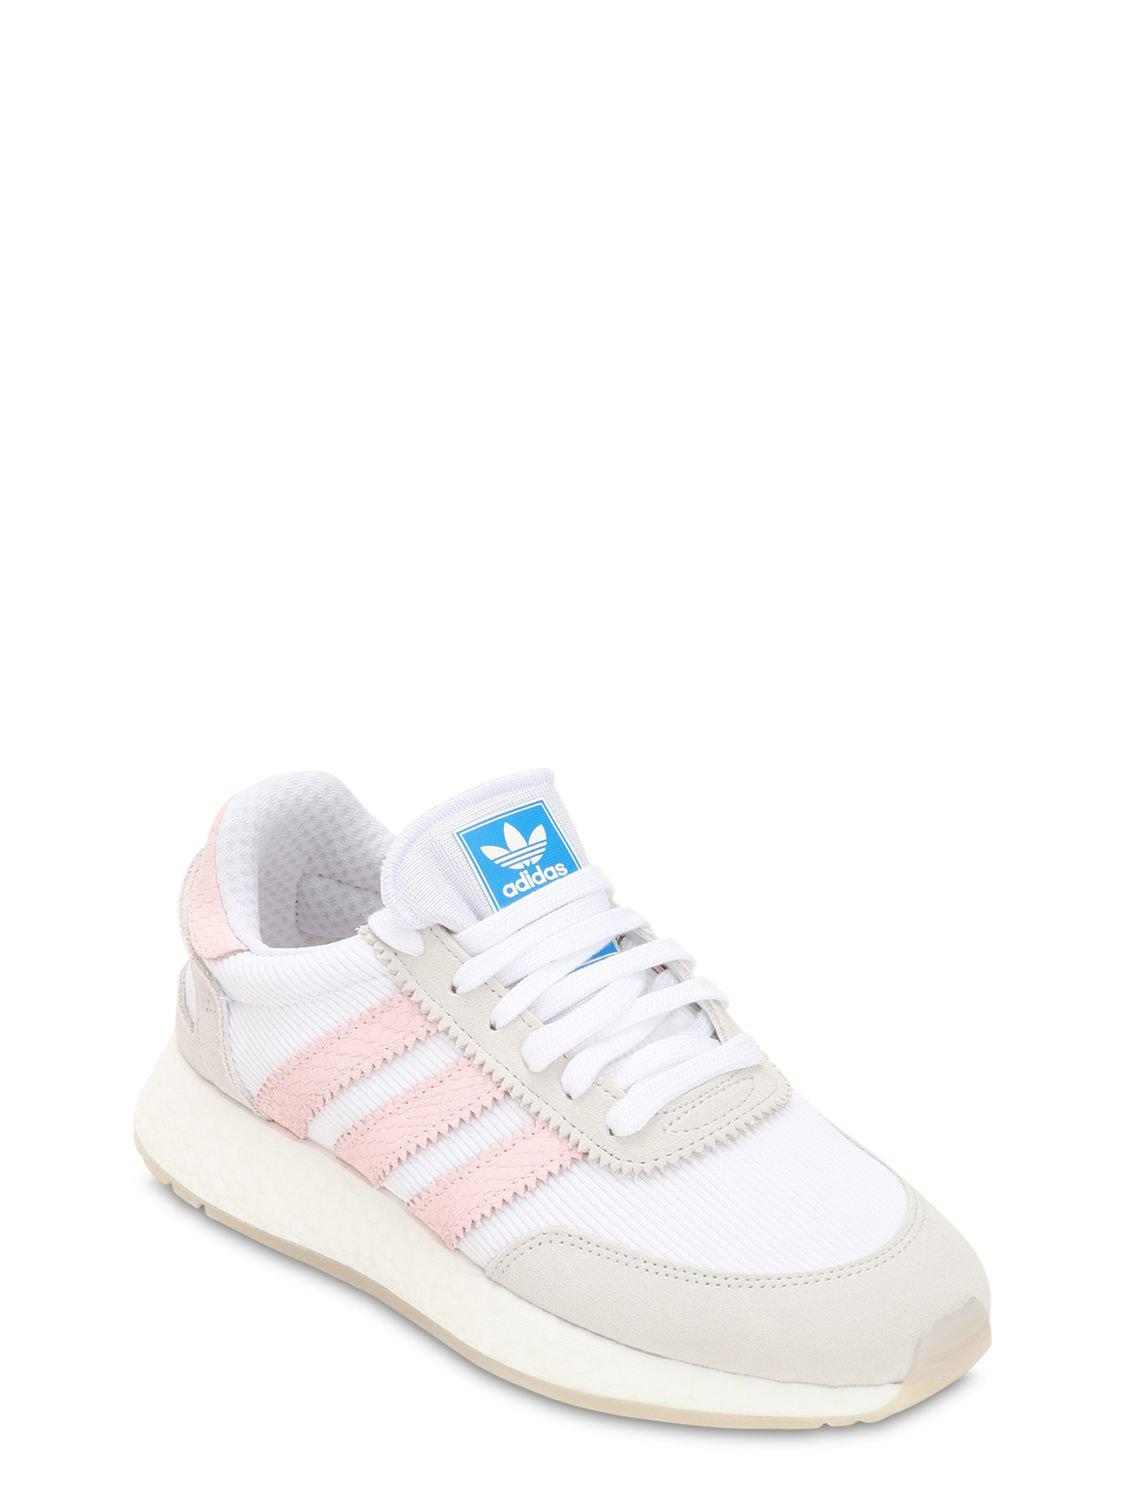 detailed look ce8ab 2593d Adidas Originals - White I-5923 Boost Sneakers - Lyst. View fullscreen